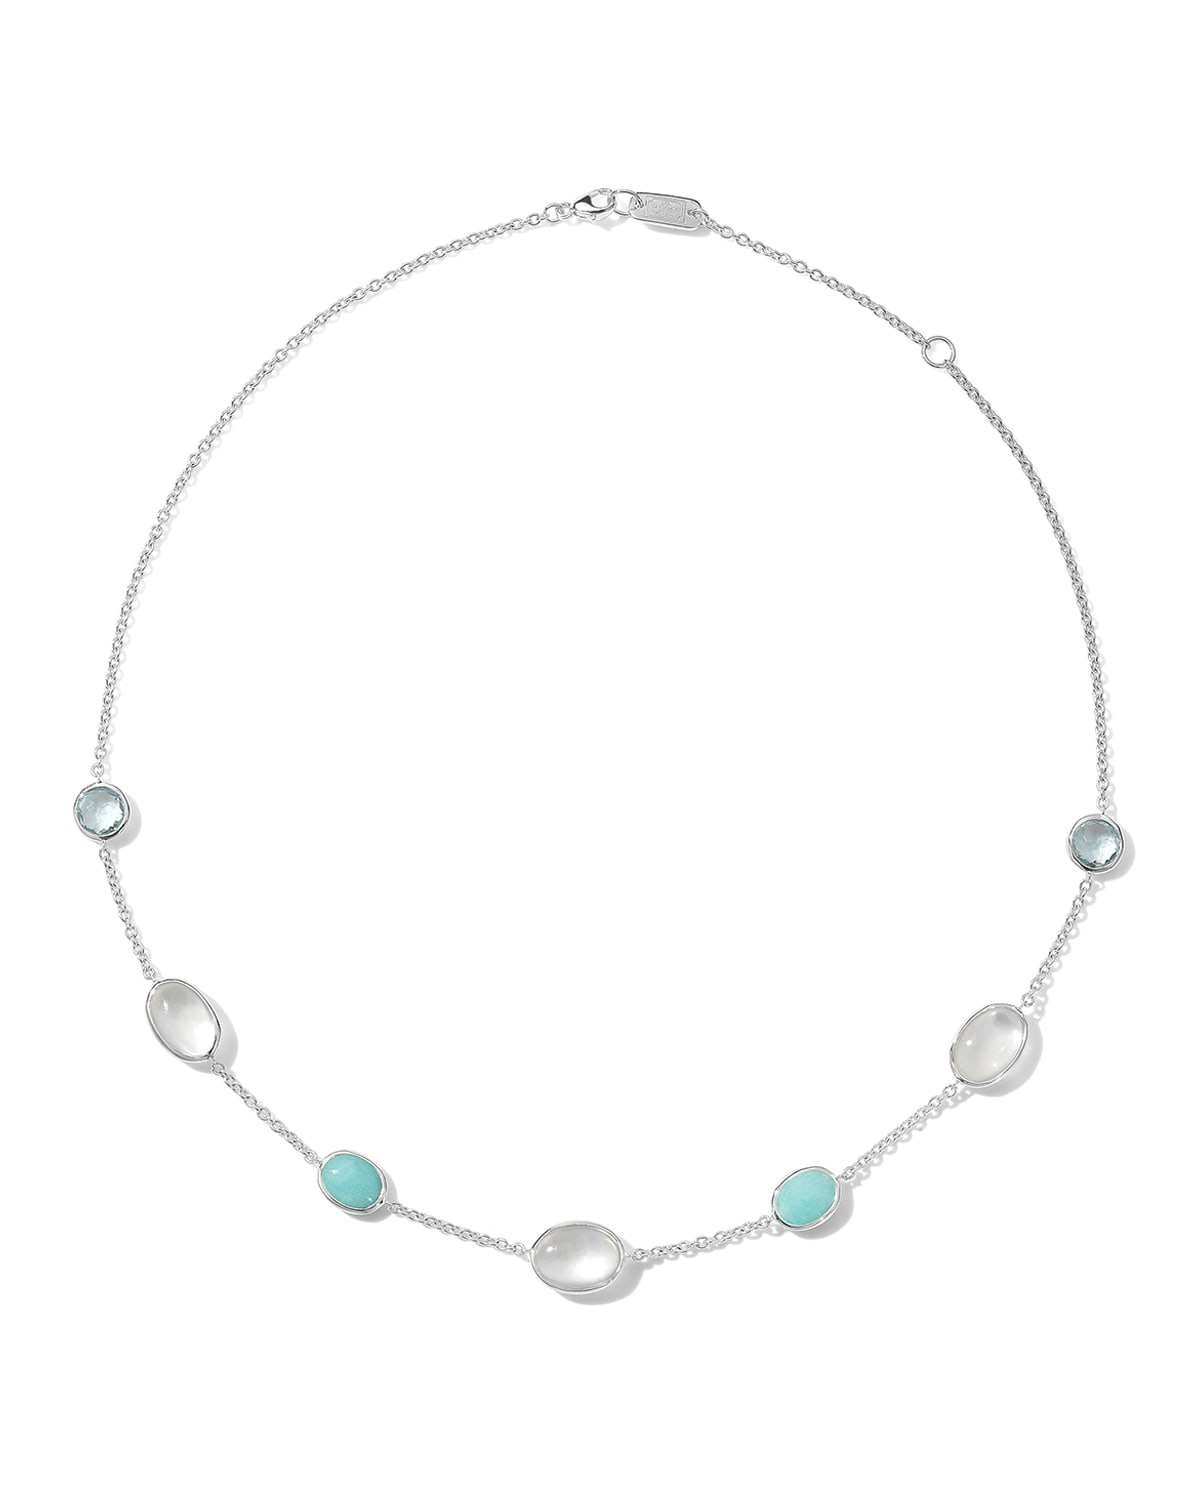 Rock Candy Luce 7-Stone Chain Necklace in Cascata